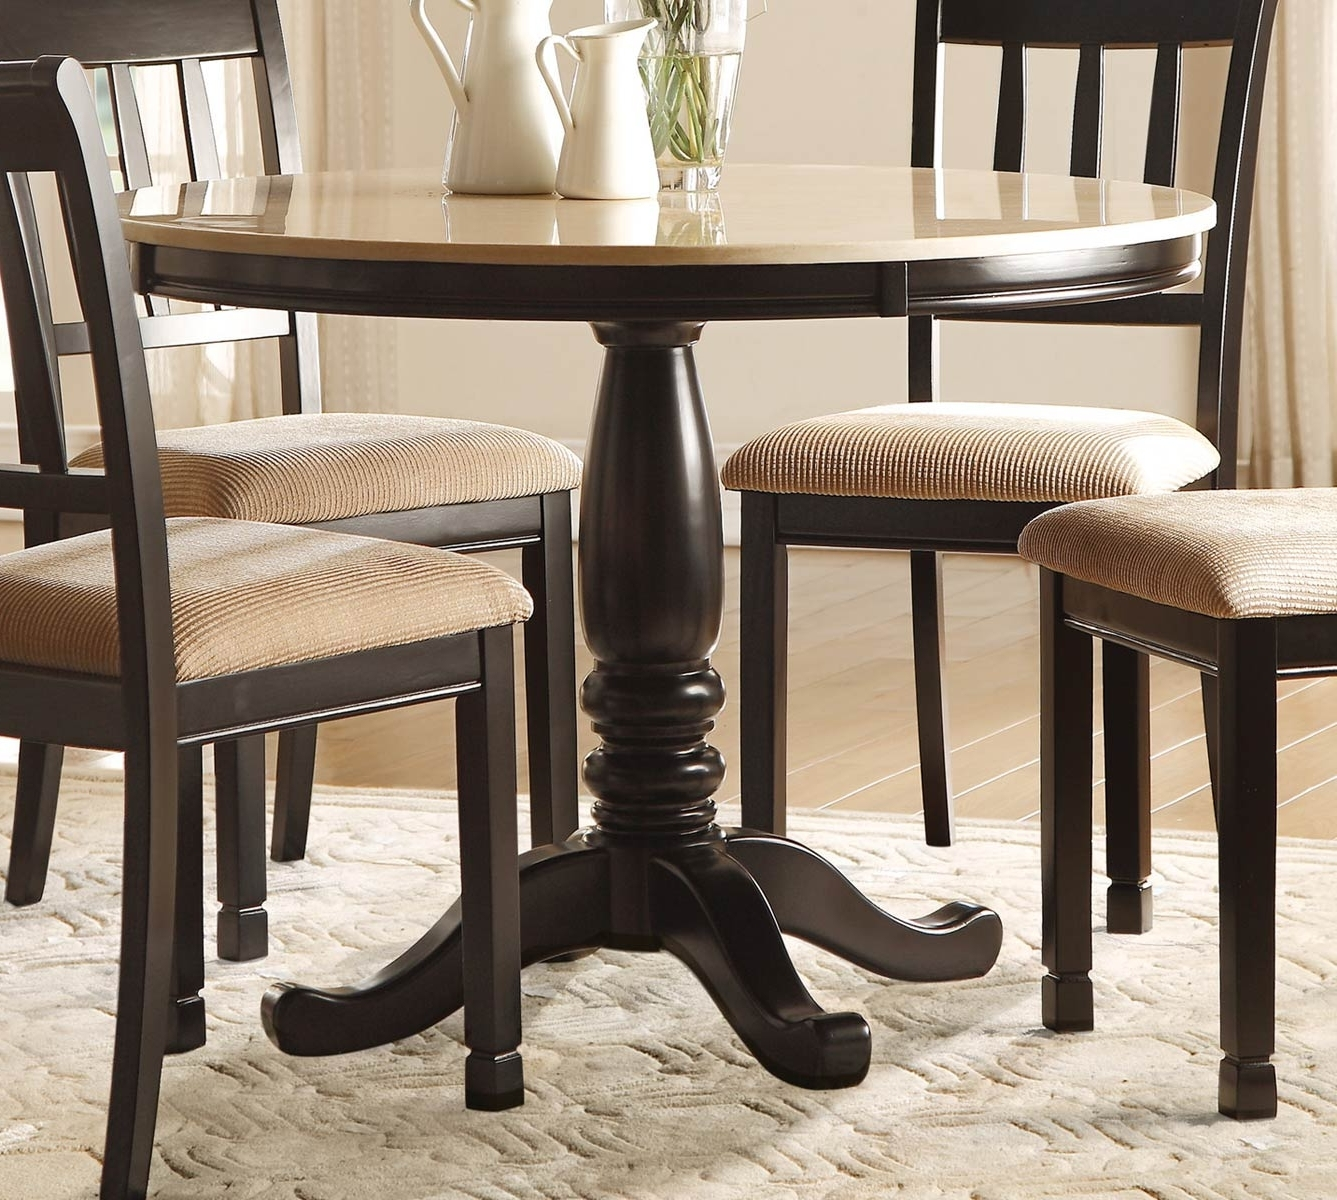 Round Dining Tables With Most Up To Date Homelegance Dearborn Round Dining Table – Faux Marble Top – Black (View 20 of 25)